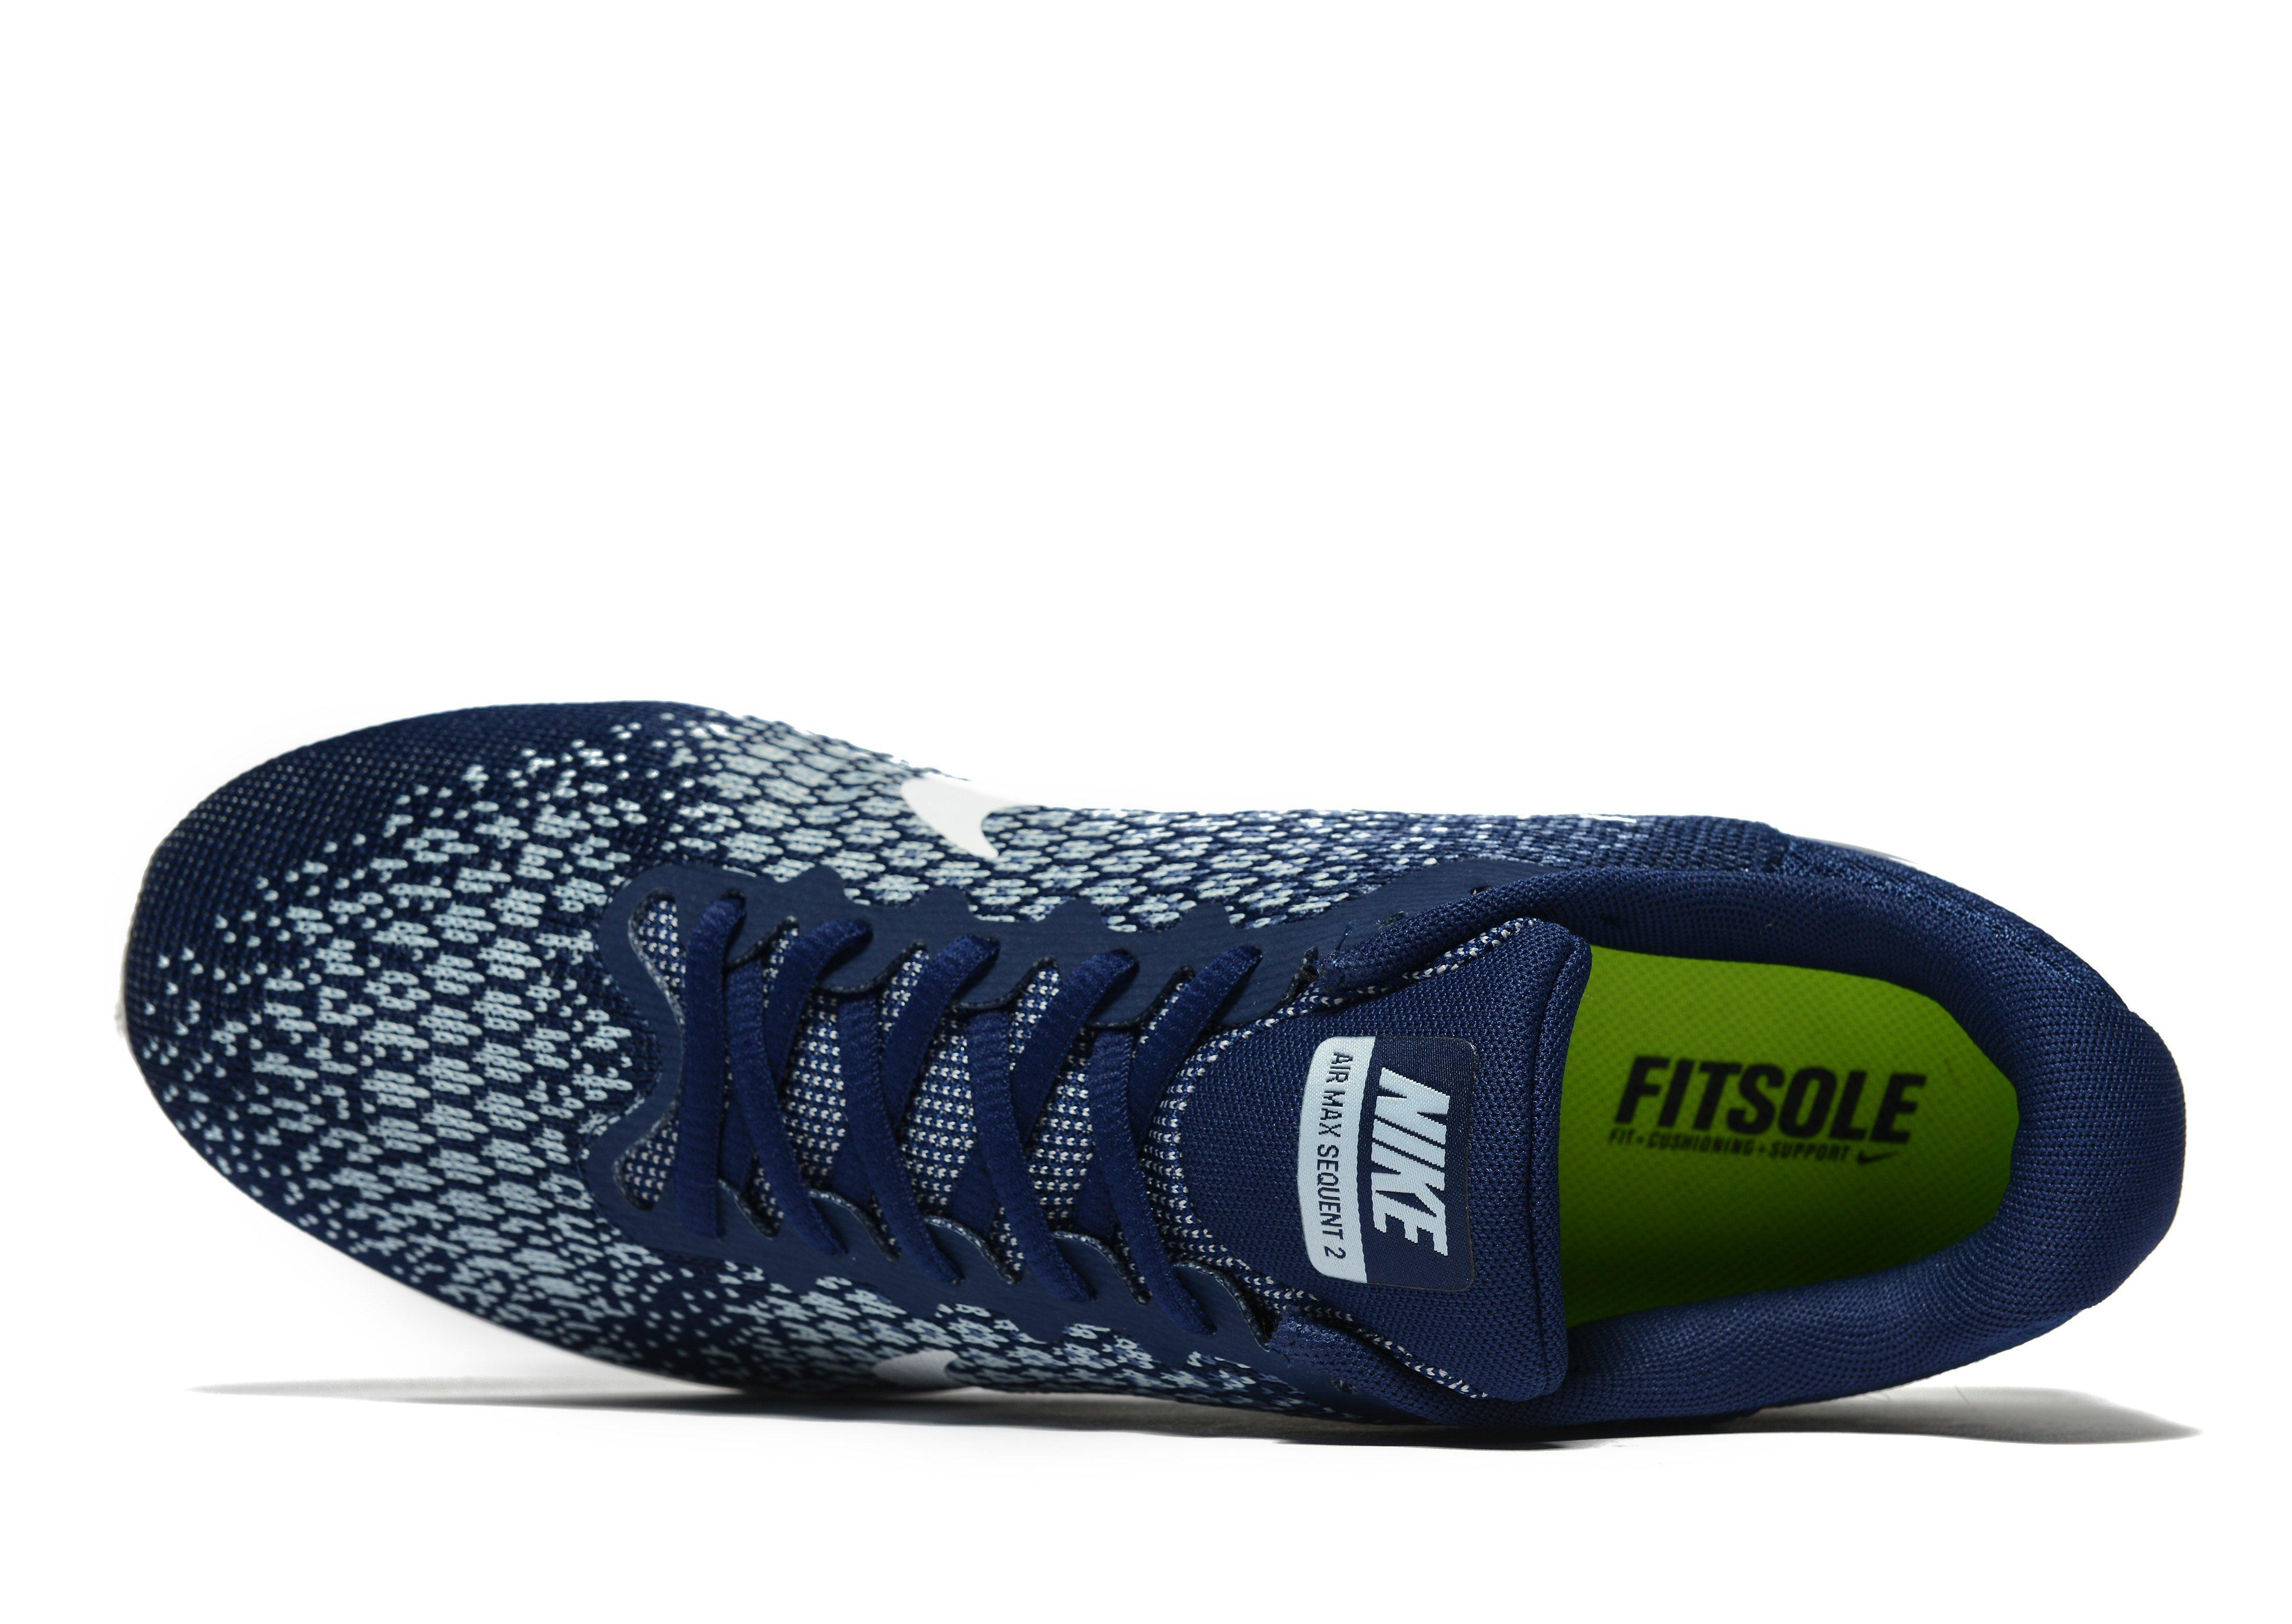 Nike Synthetic Air Max Sequent 2 in Blue for Men - Lyst